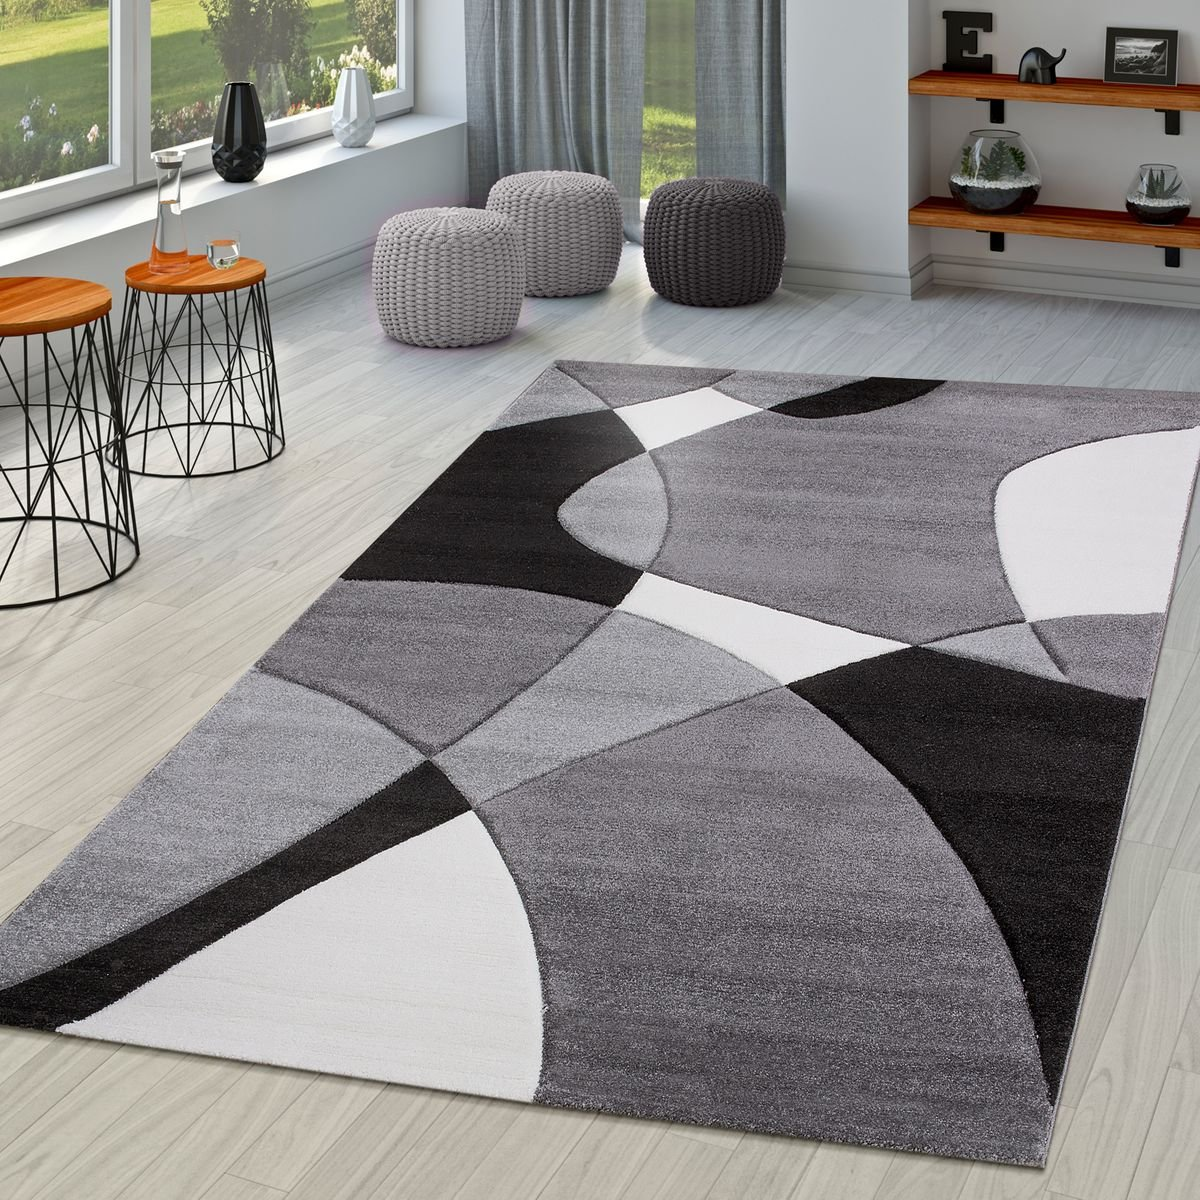 TT Home Modern Rug Living Room Abstract Contour Cut In Black Grey White, Size:60x110 cm